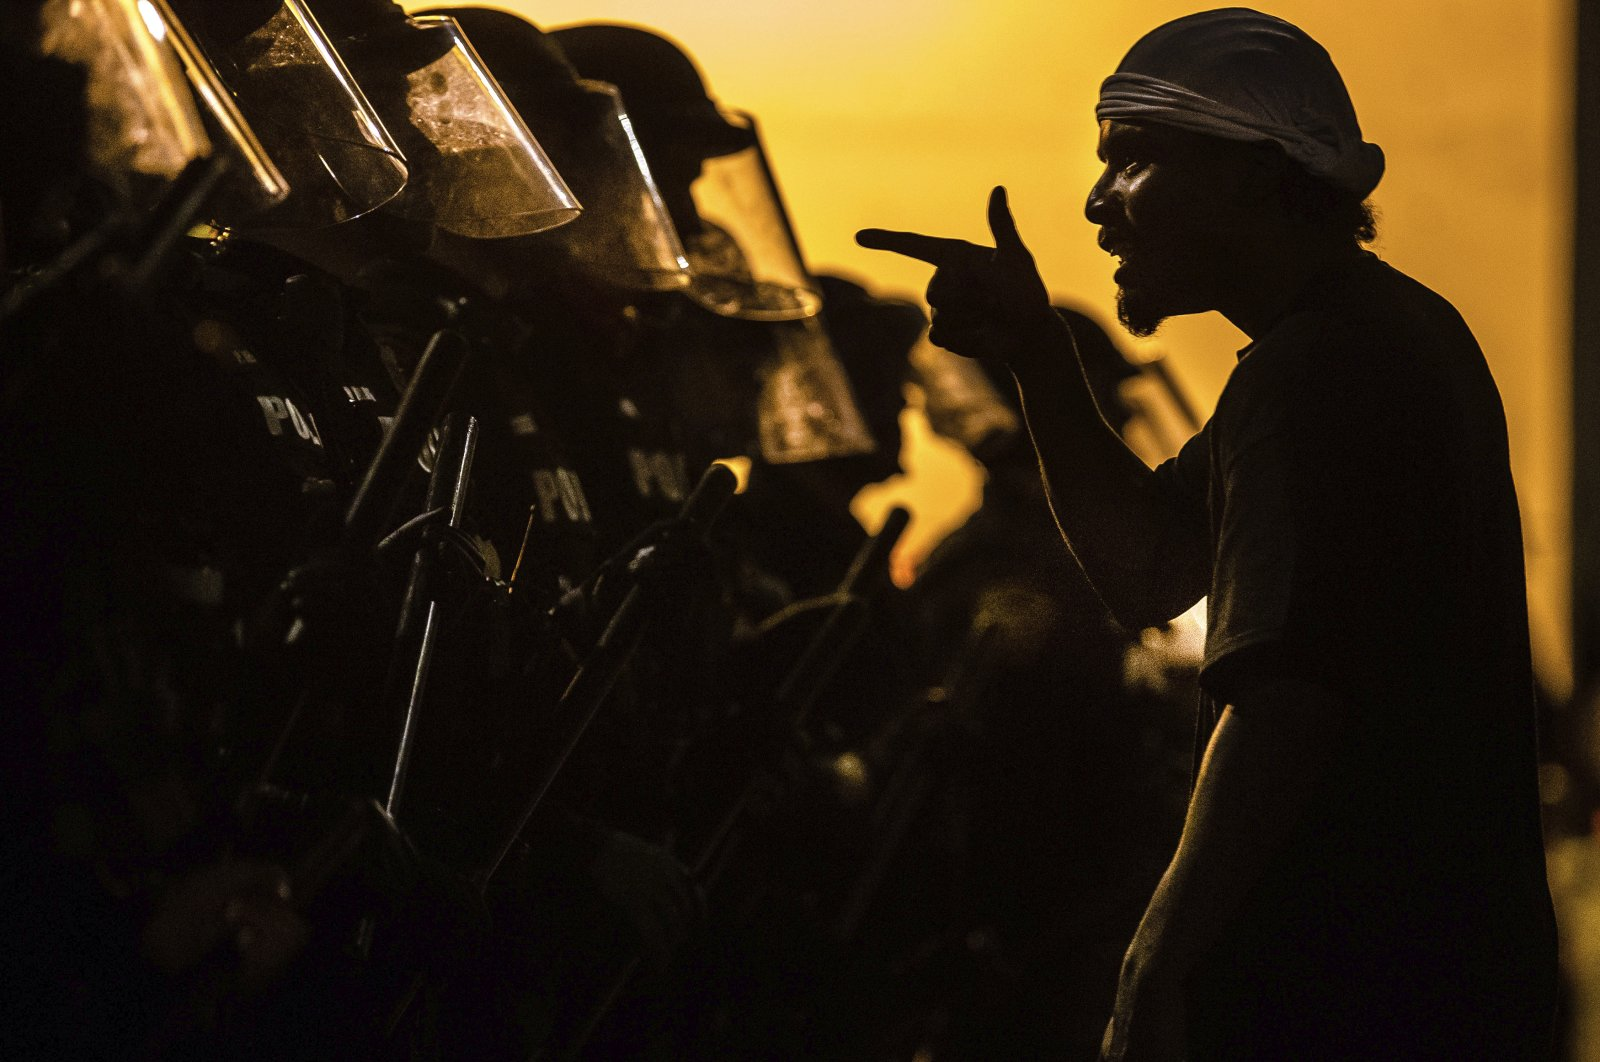 A protester addresses a line of Tucson Police Officers in riot gear in Tucson, Ariz, May 30, 2020. (AP Photo)